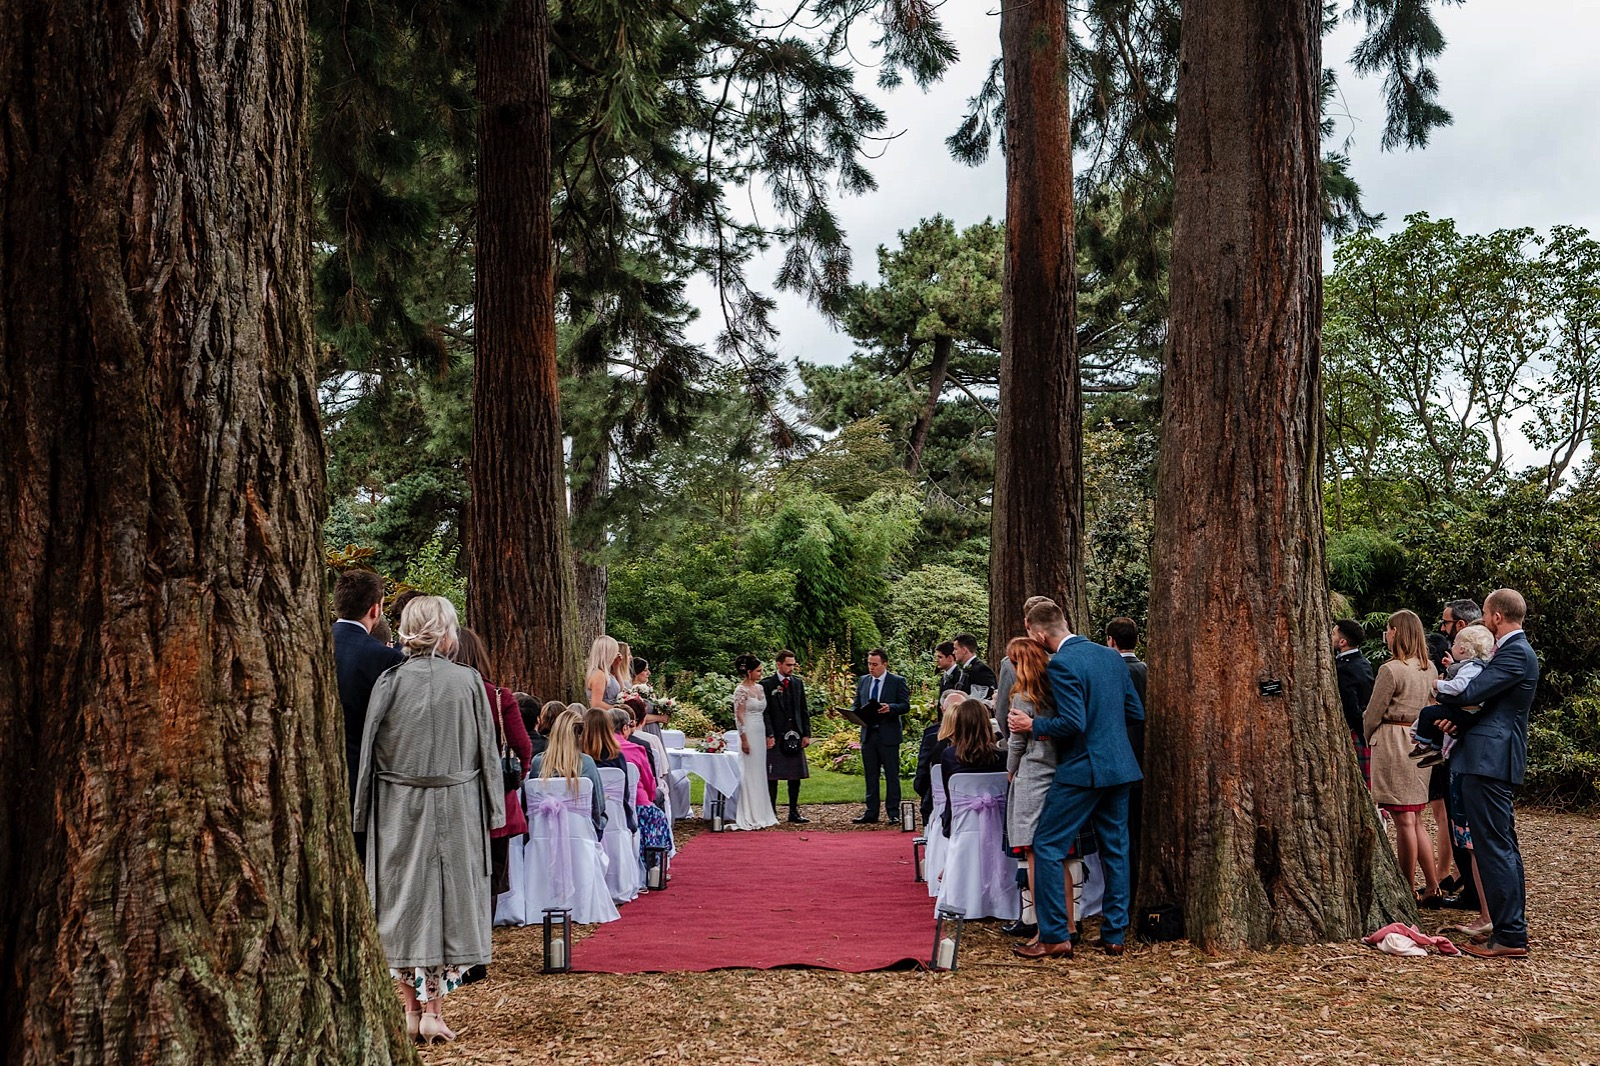 Couple Getting married in The Royal Botanical Gardens in Edinburgh